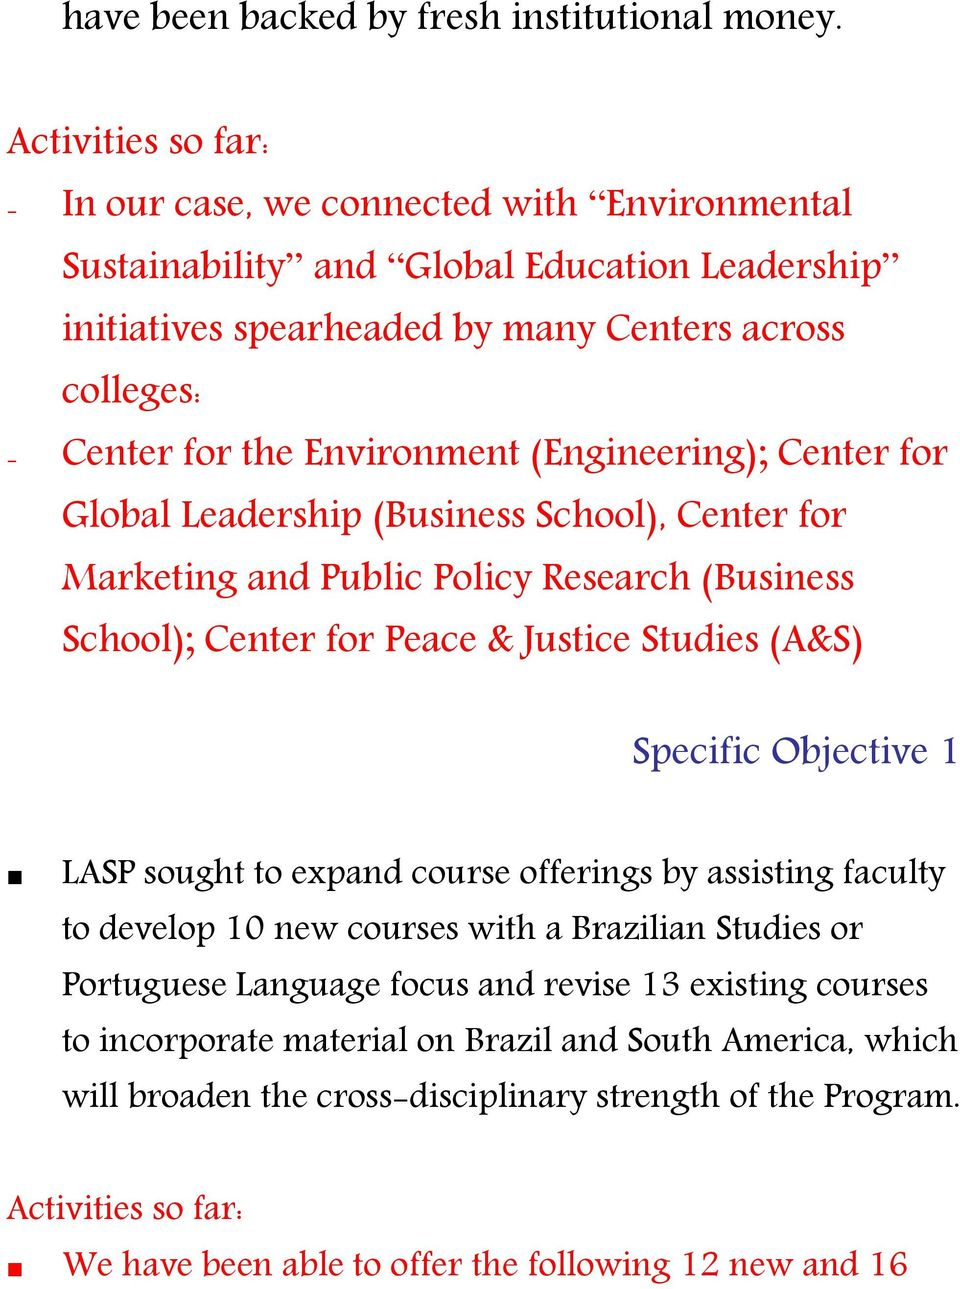 (Engineering); Center for Global Leadership (Business School), Center for Marketing and Public Policy Research (Business School); Center for Peace & Justice Studies (A&S) Specific Objective